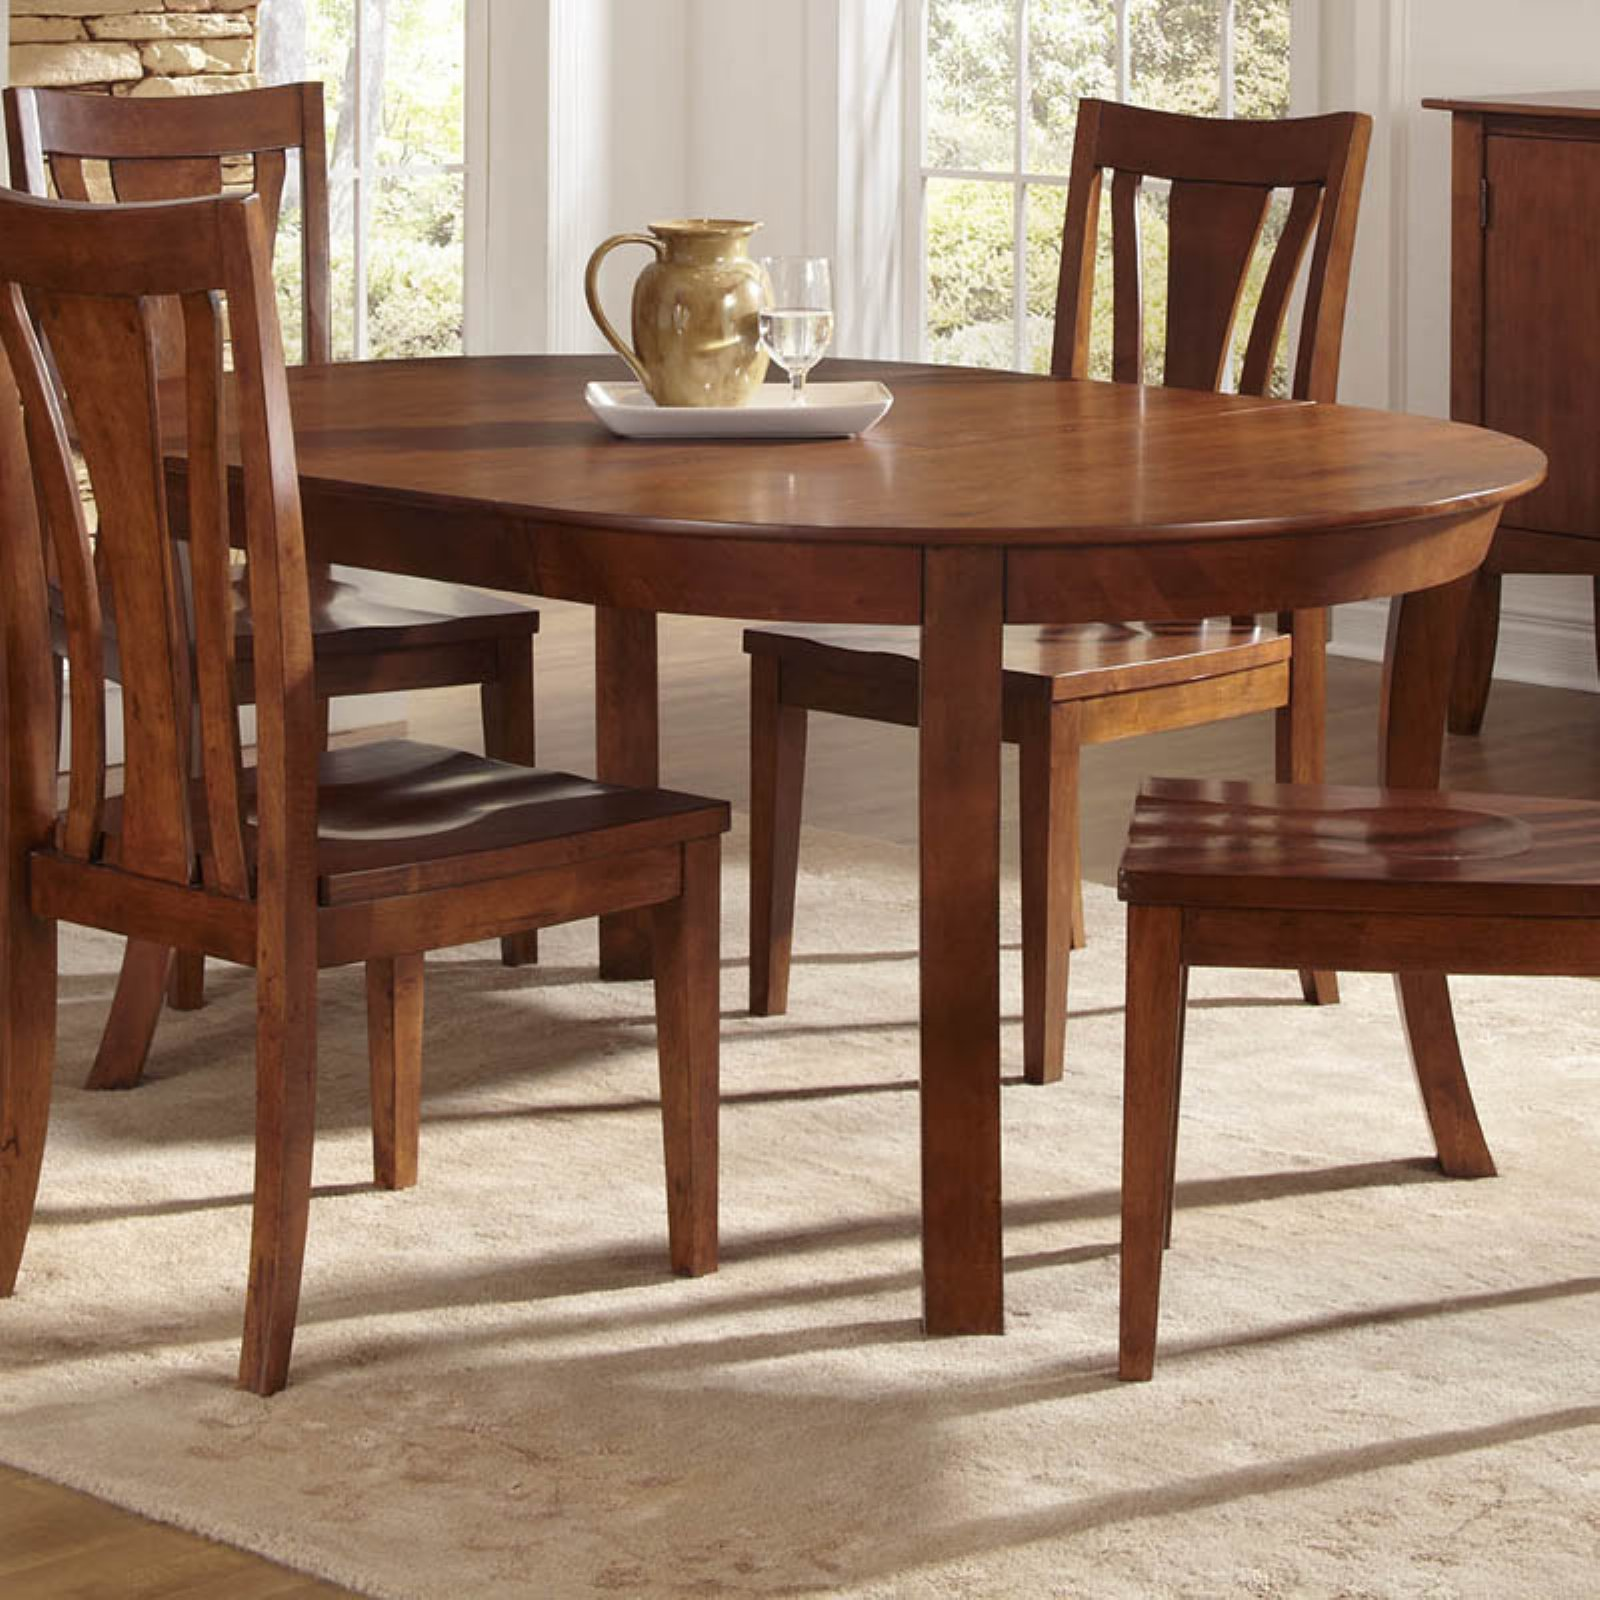 A-America Grant Park Oval Dining Table